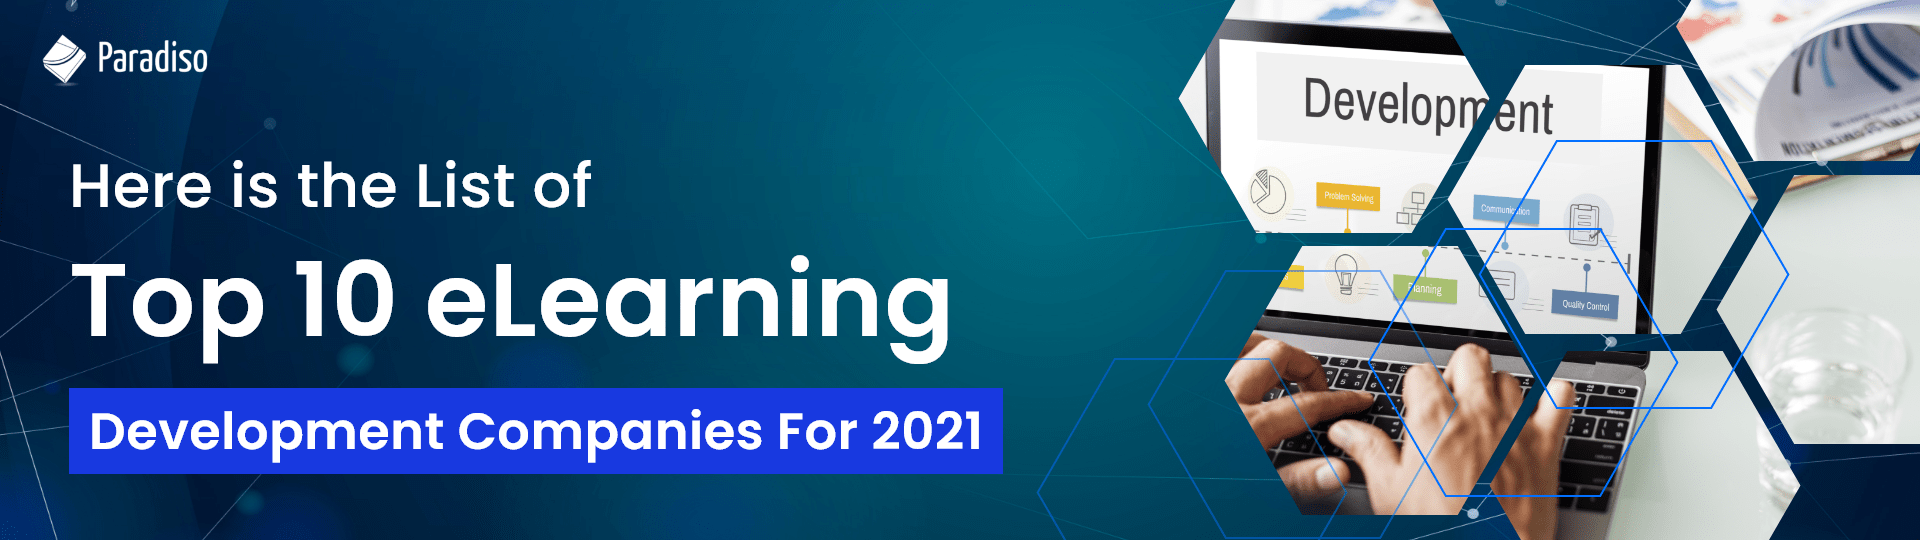 Here is the List of Top 10 eLearning development companies for 2021